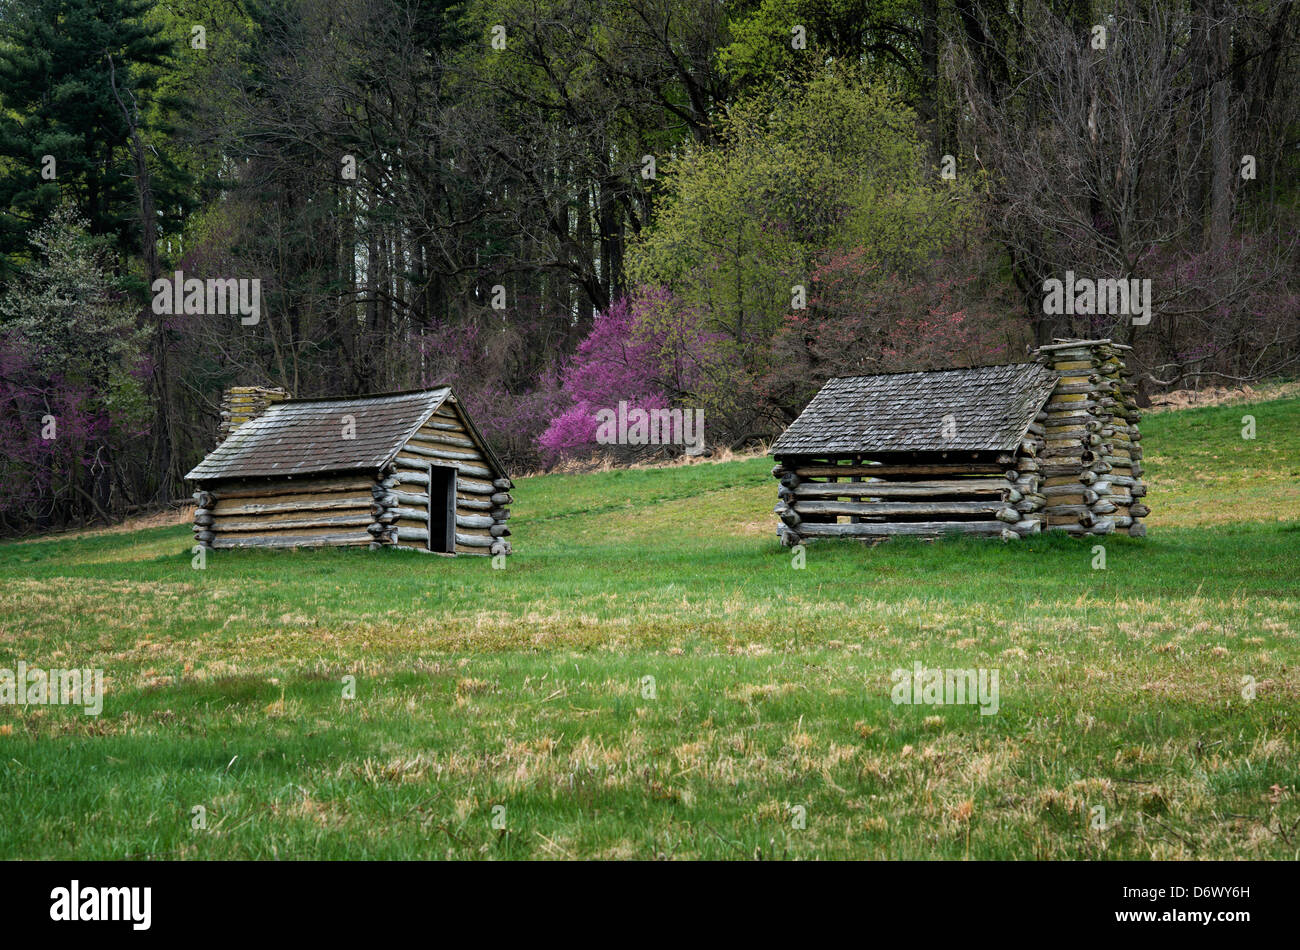 Encampment cabins at Vally Forge National Historic Park, Pennsylvania, USA - Stock Image